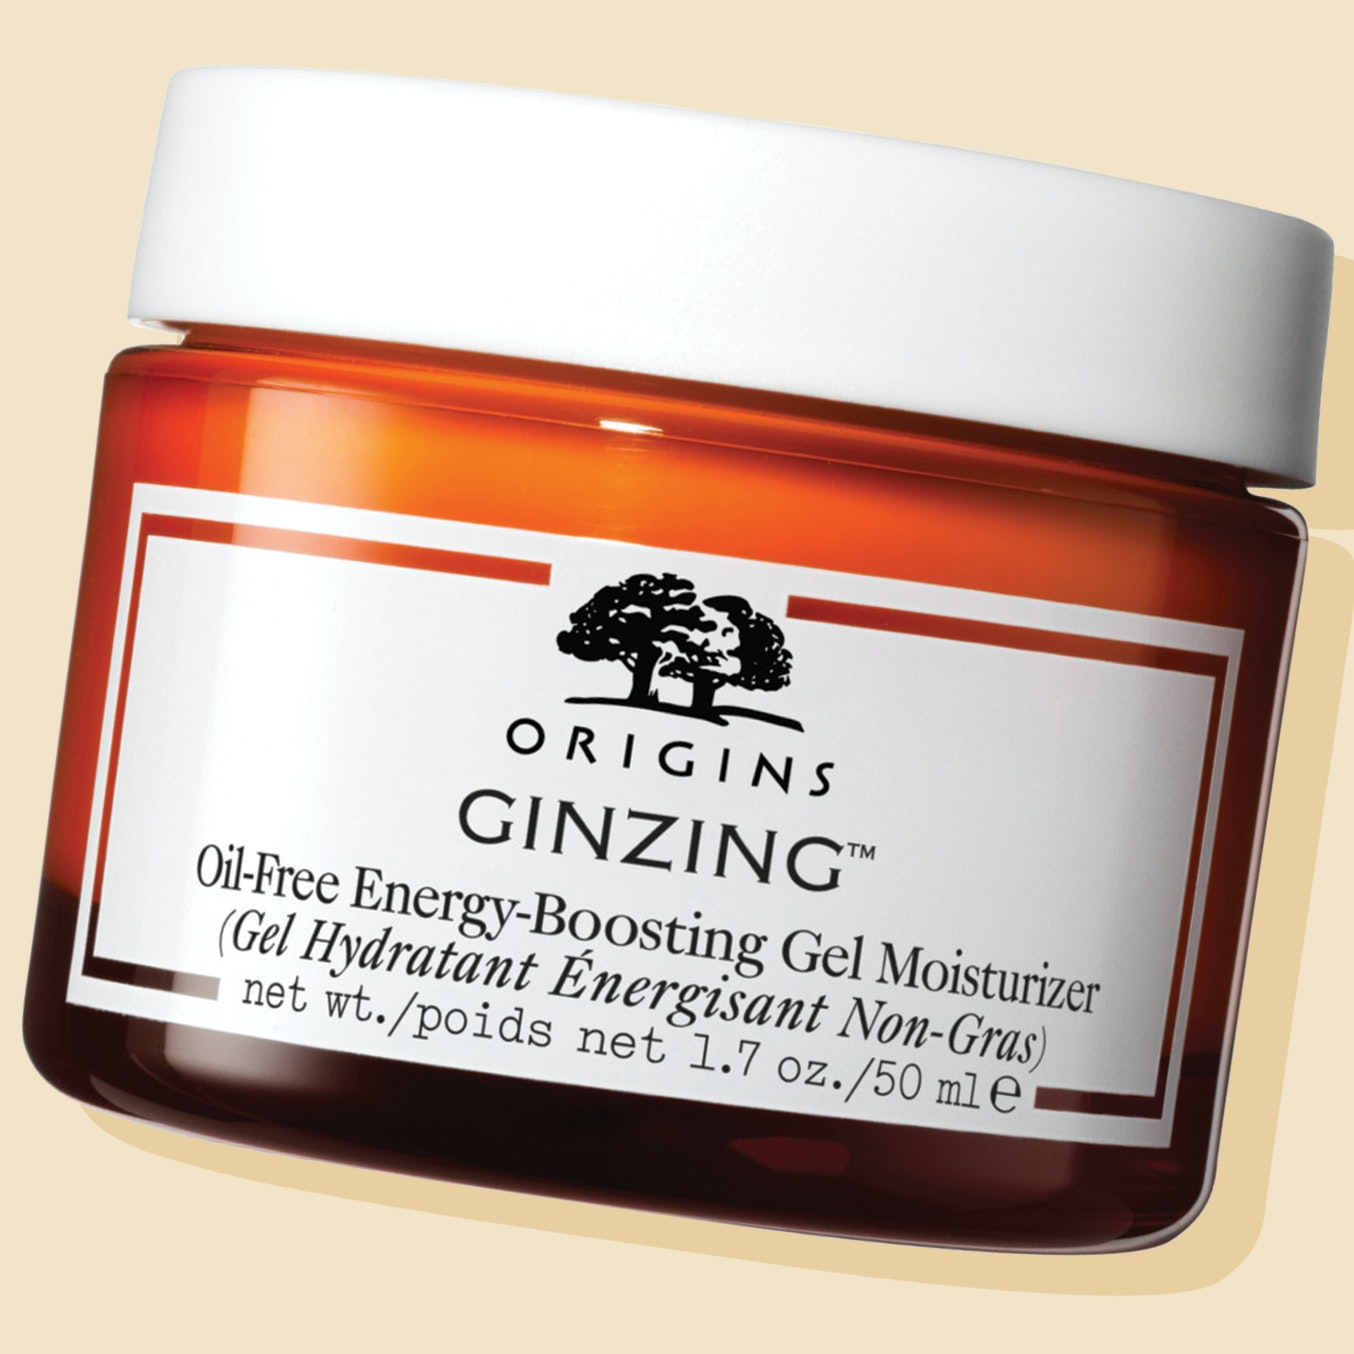 The Origins Ginzing Energy-Boosting Gel Moisturizer Has Been a #1 Seller For Years